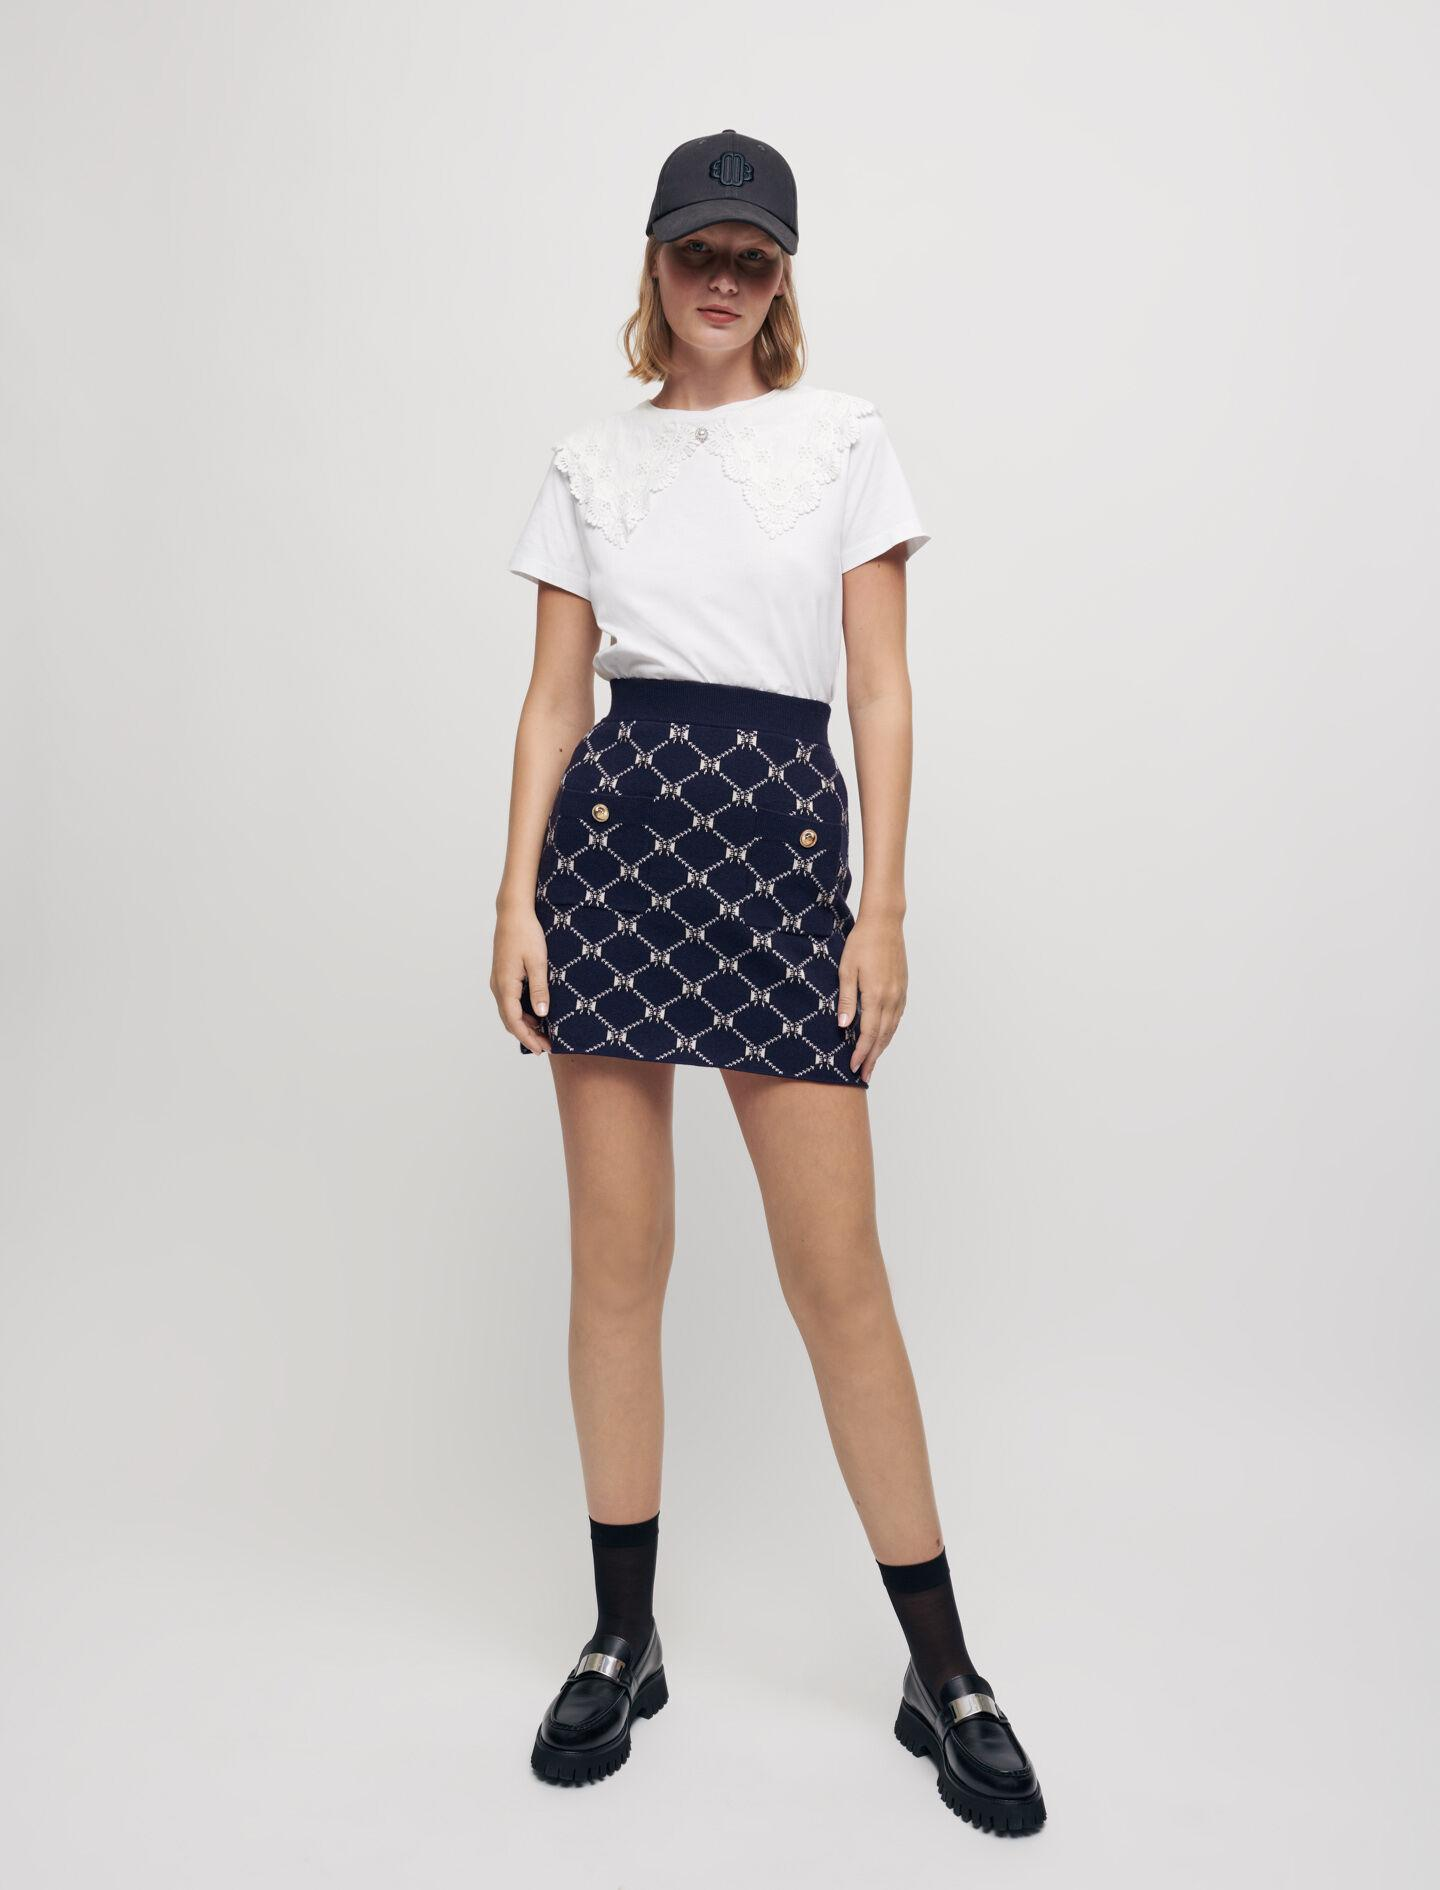 JACQUARD KNIT SKIRT WITH BOWS